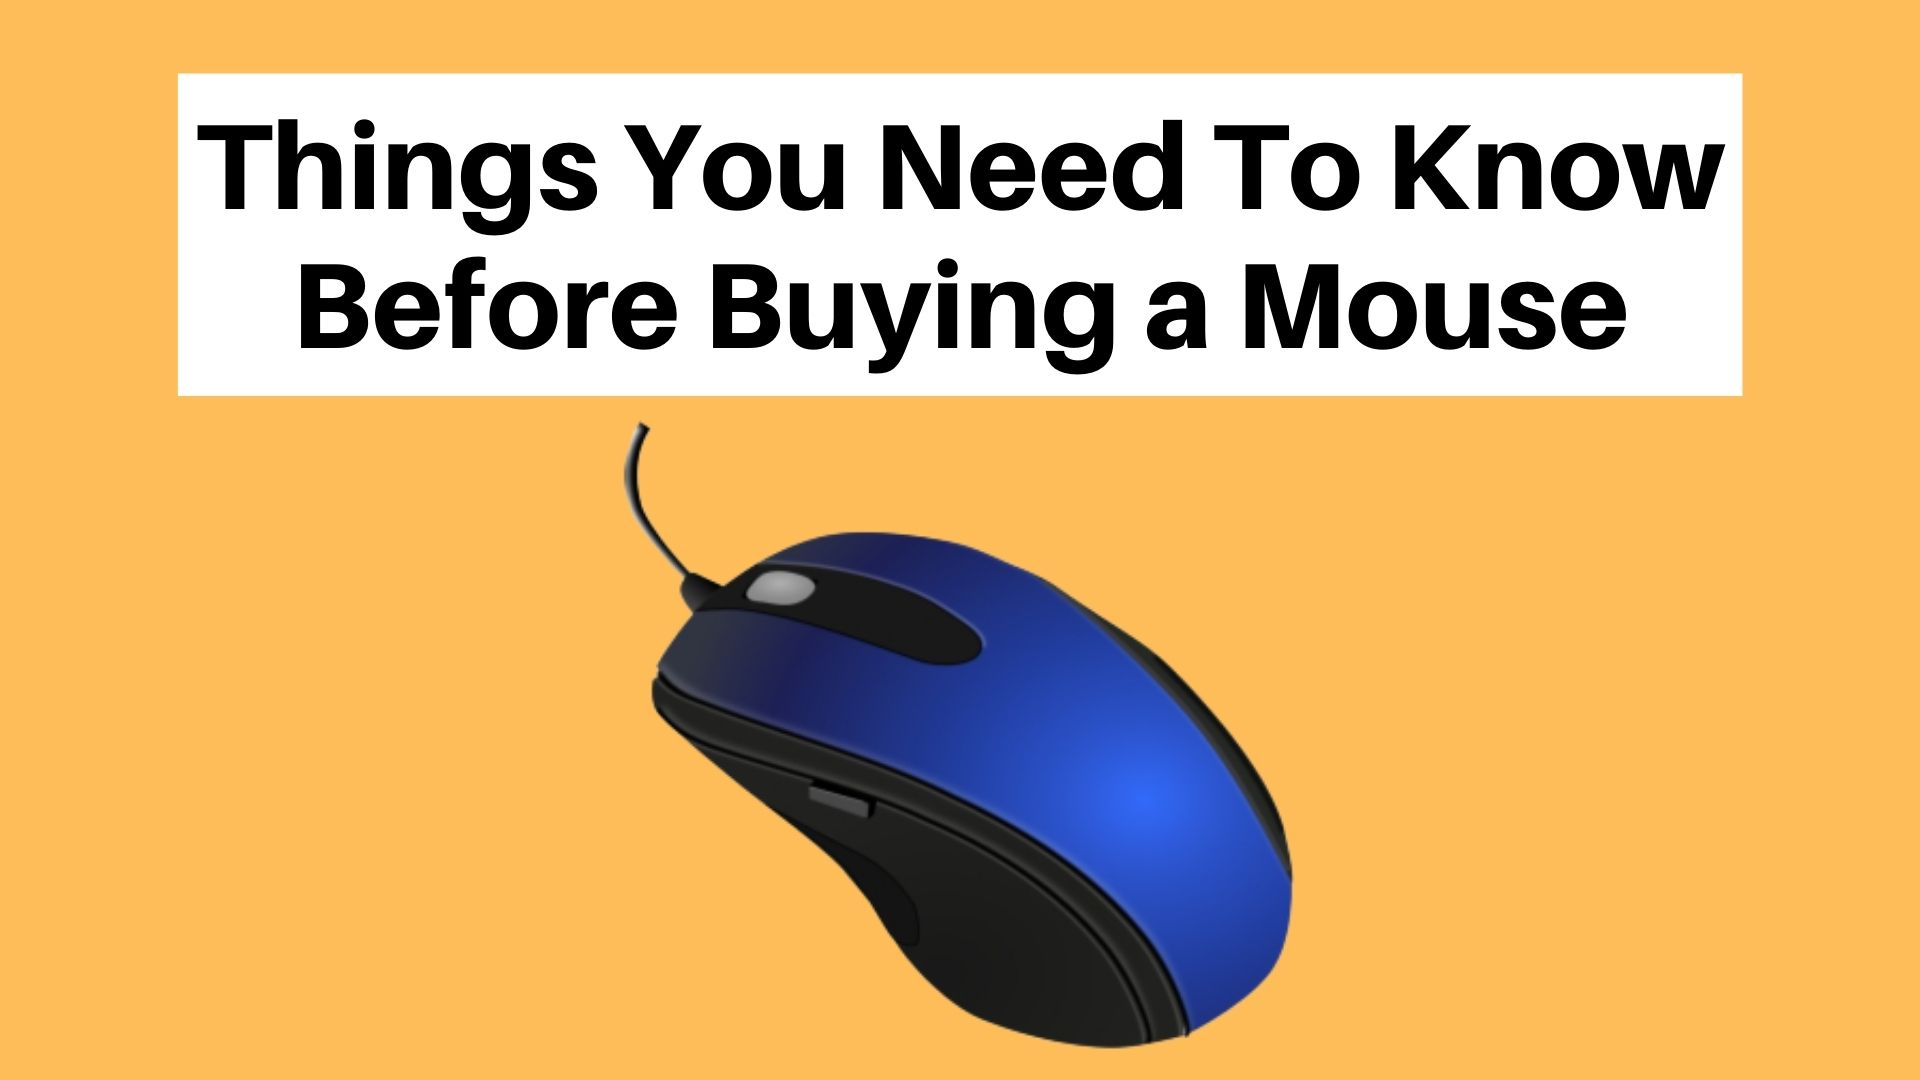 Things You Need To Know Before Buying a Mouse